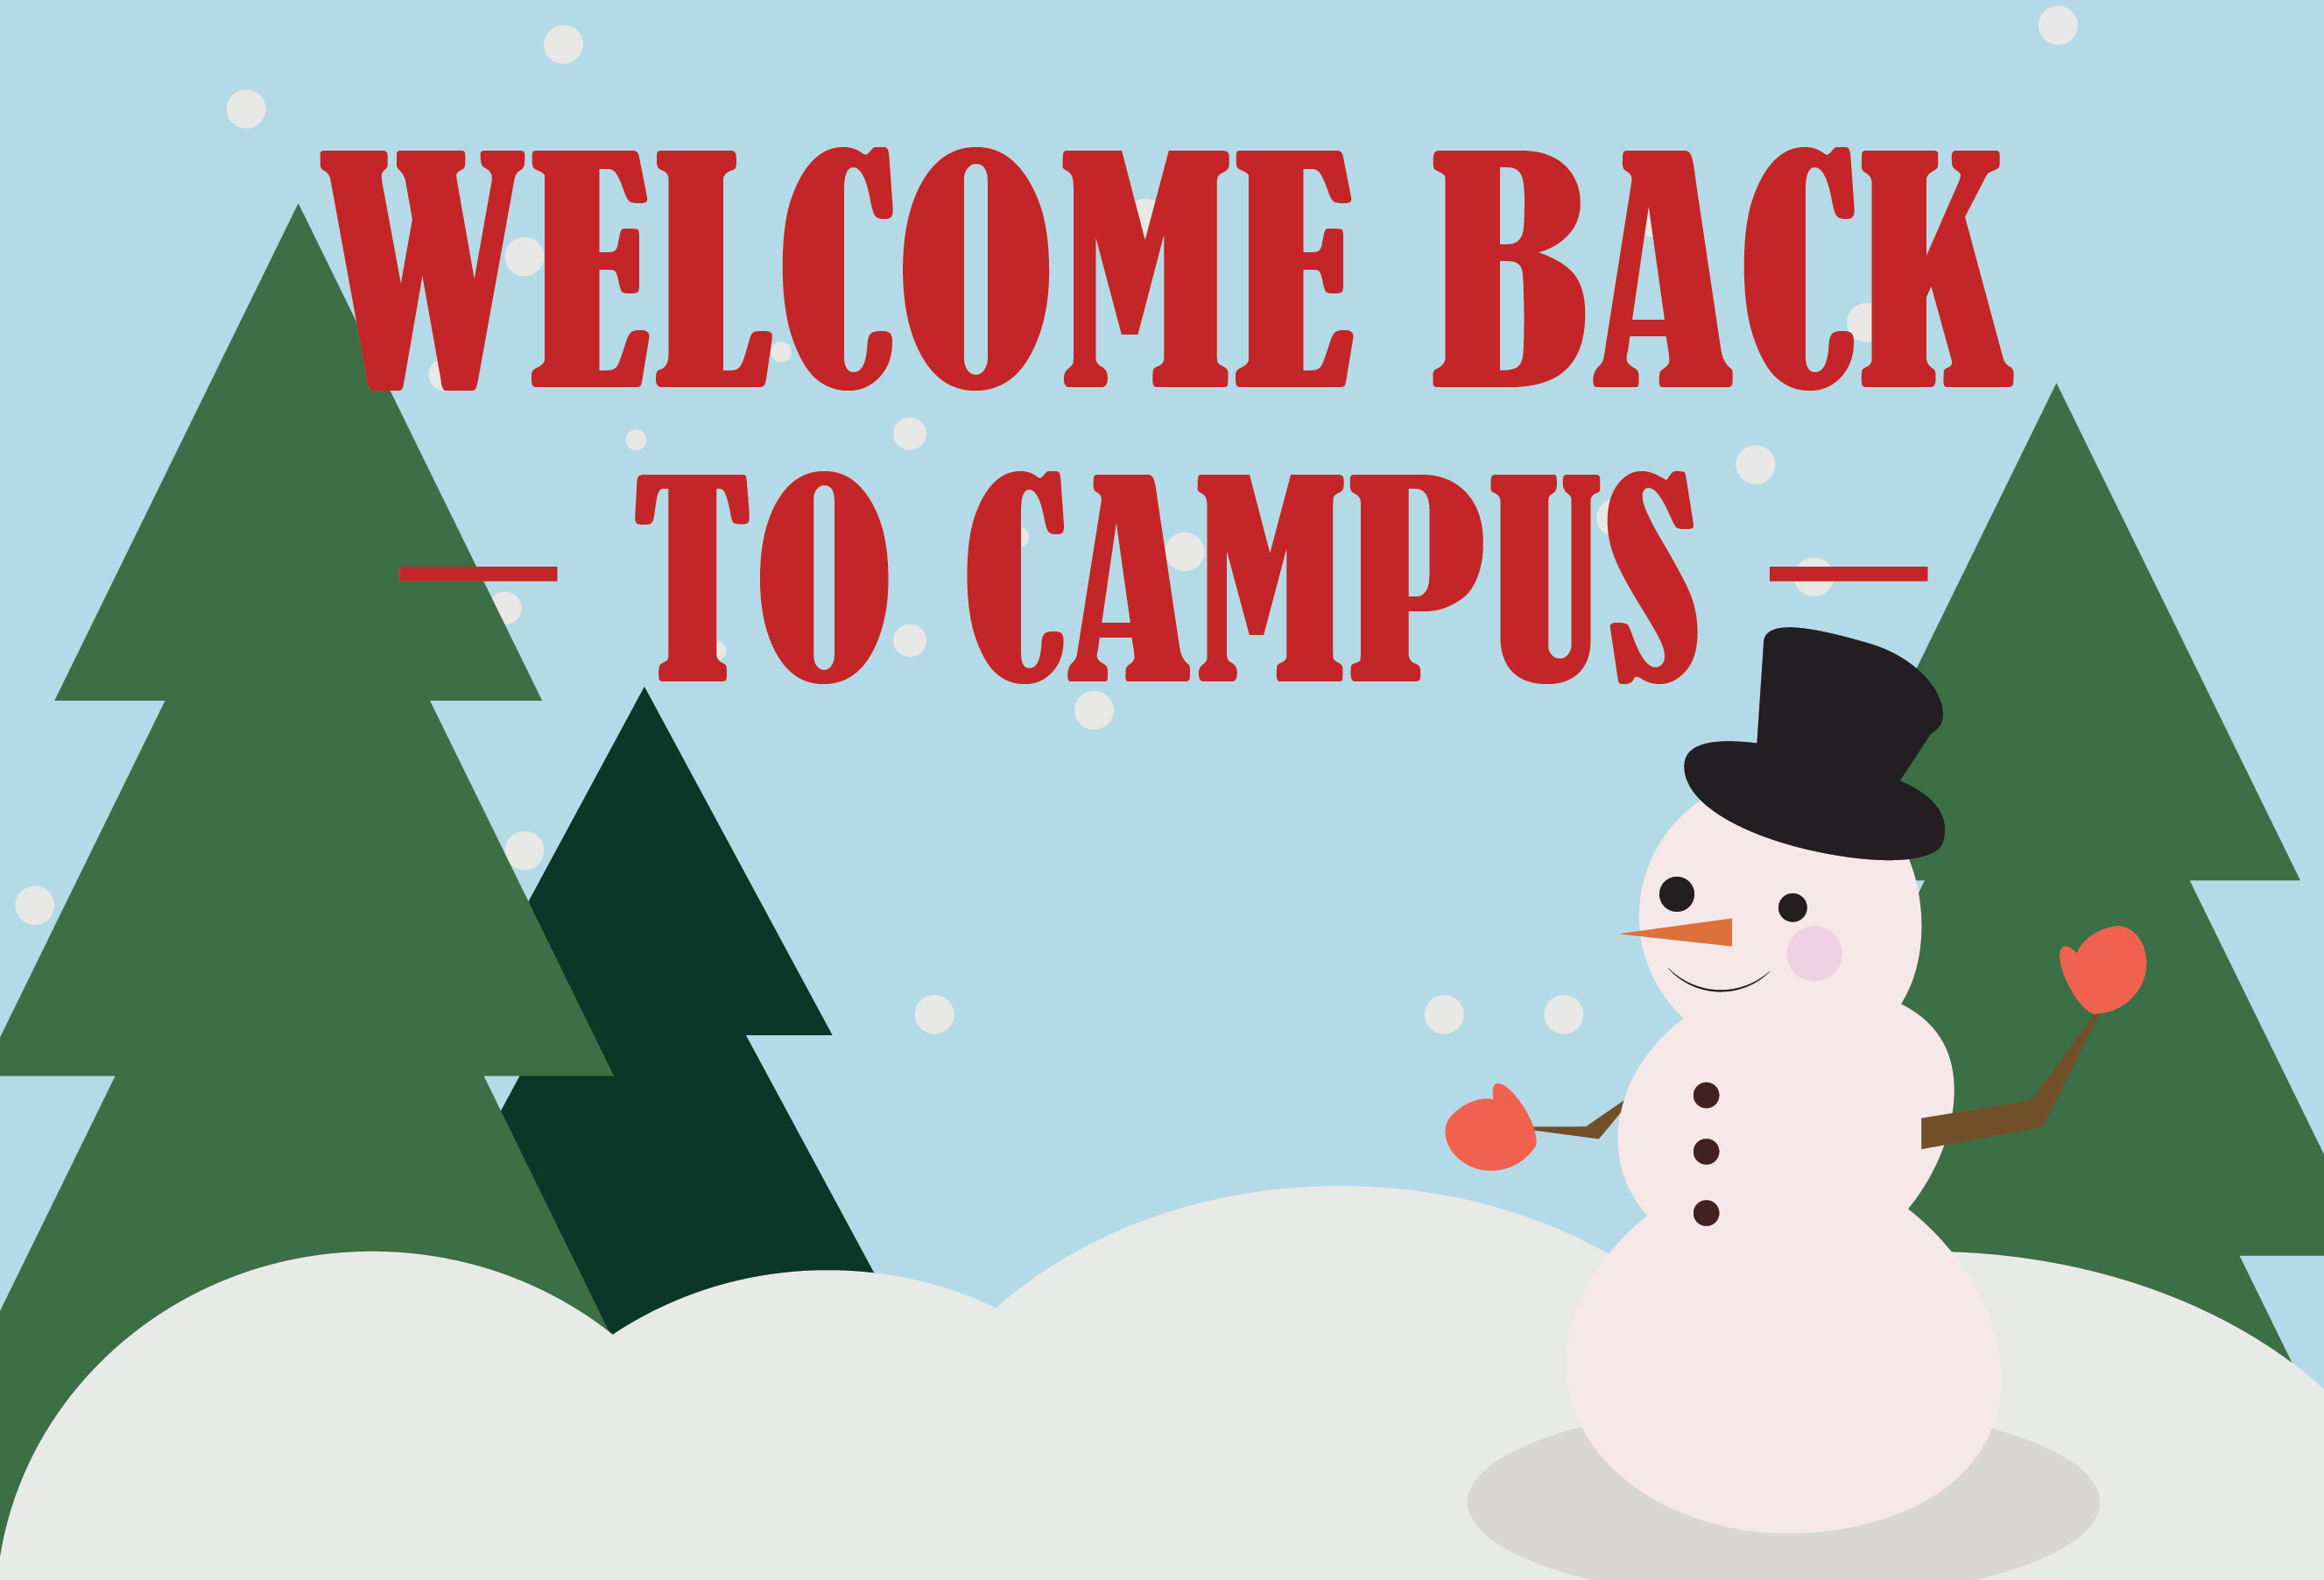 Welcome back to campus